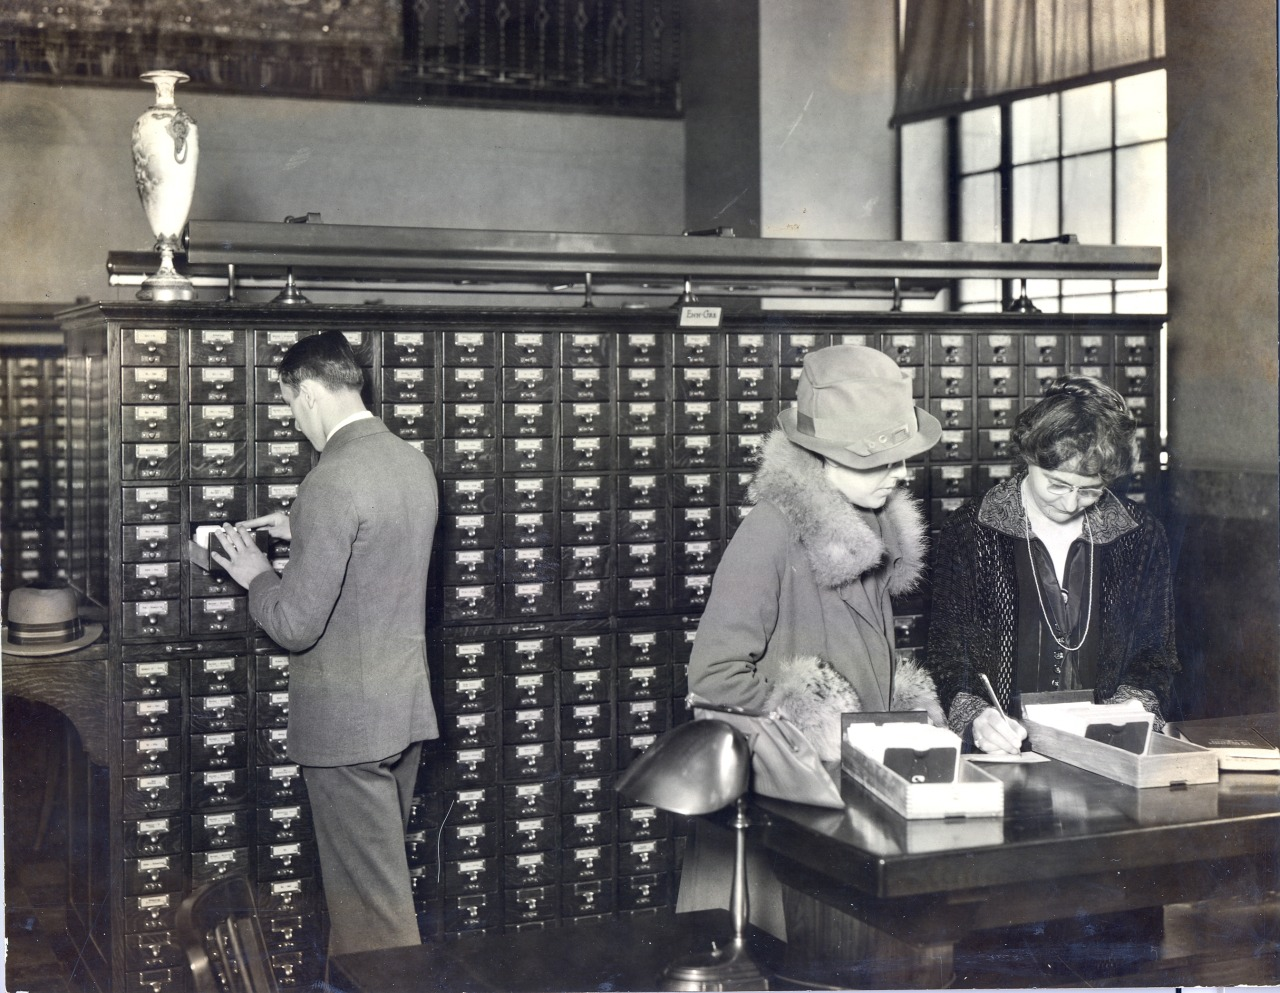 Black and white photo in mid-1920s shows several patrons finding books with the use of the card catalog.